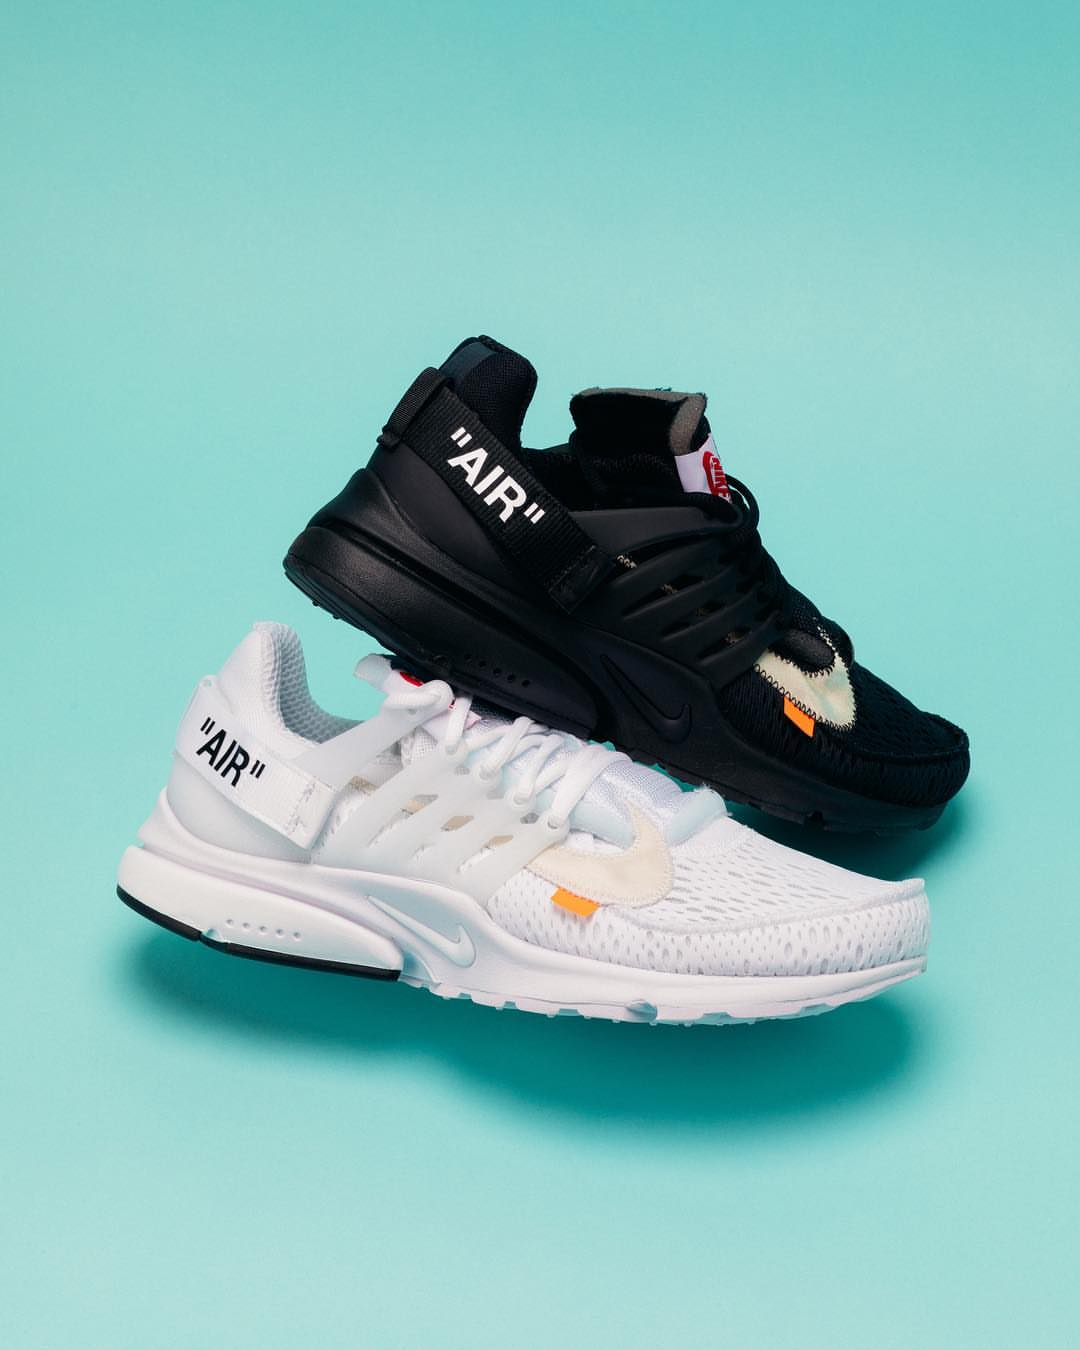 1af81b77 The Off-White x Nike Air Presto: How Will It Sell - StockX News